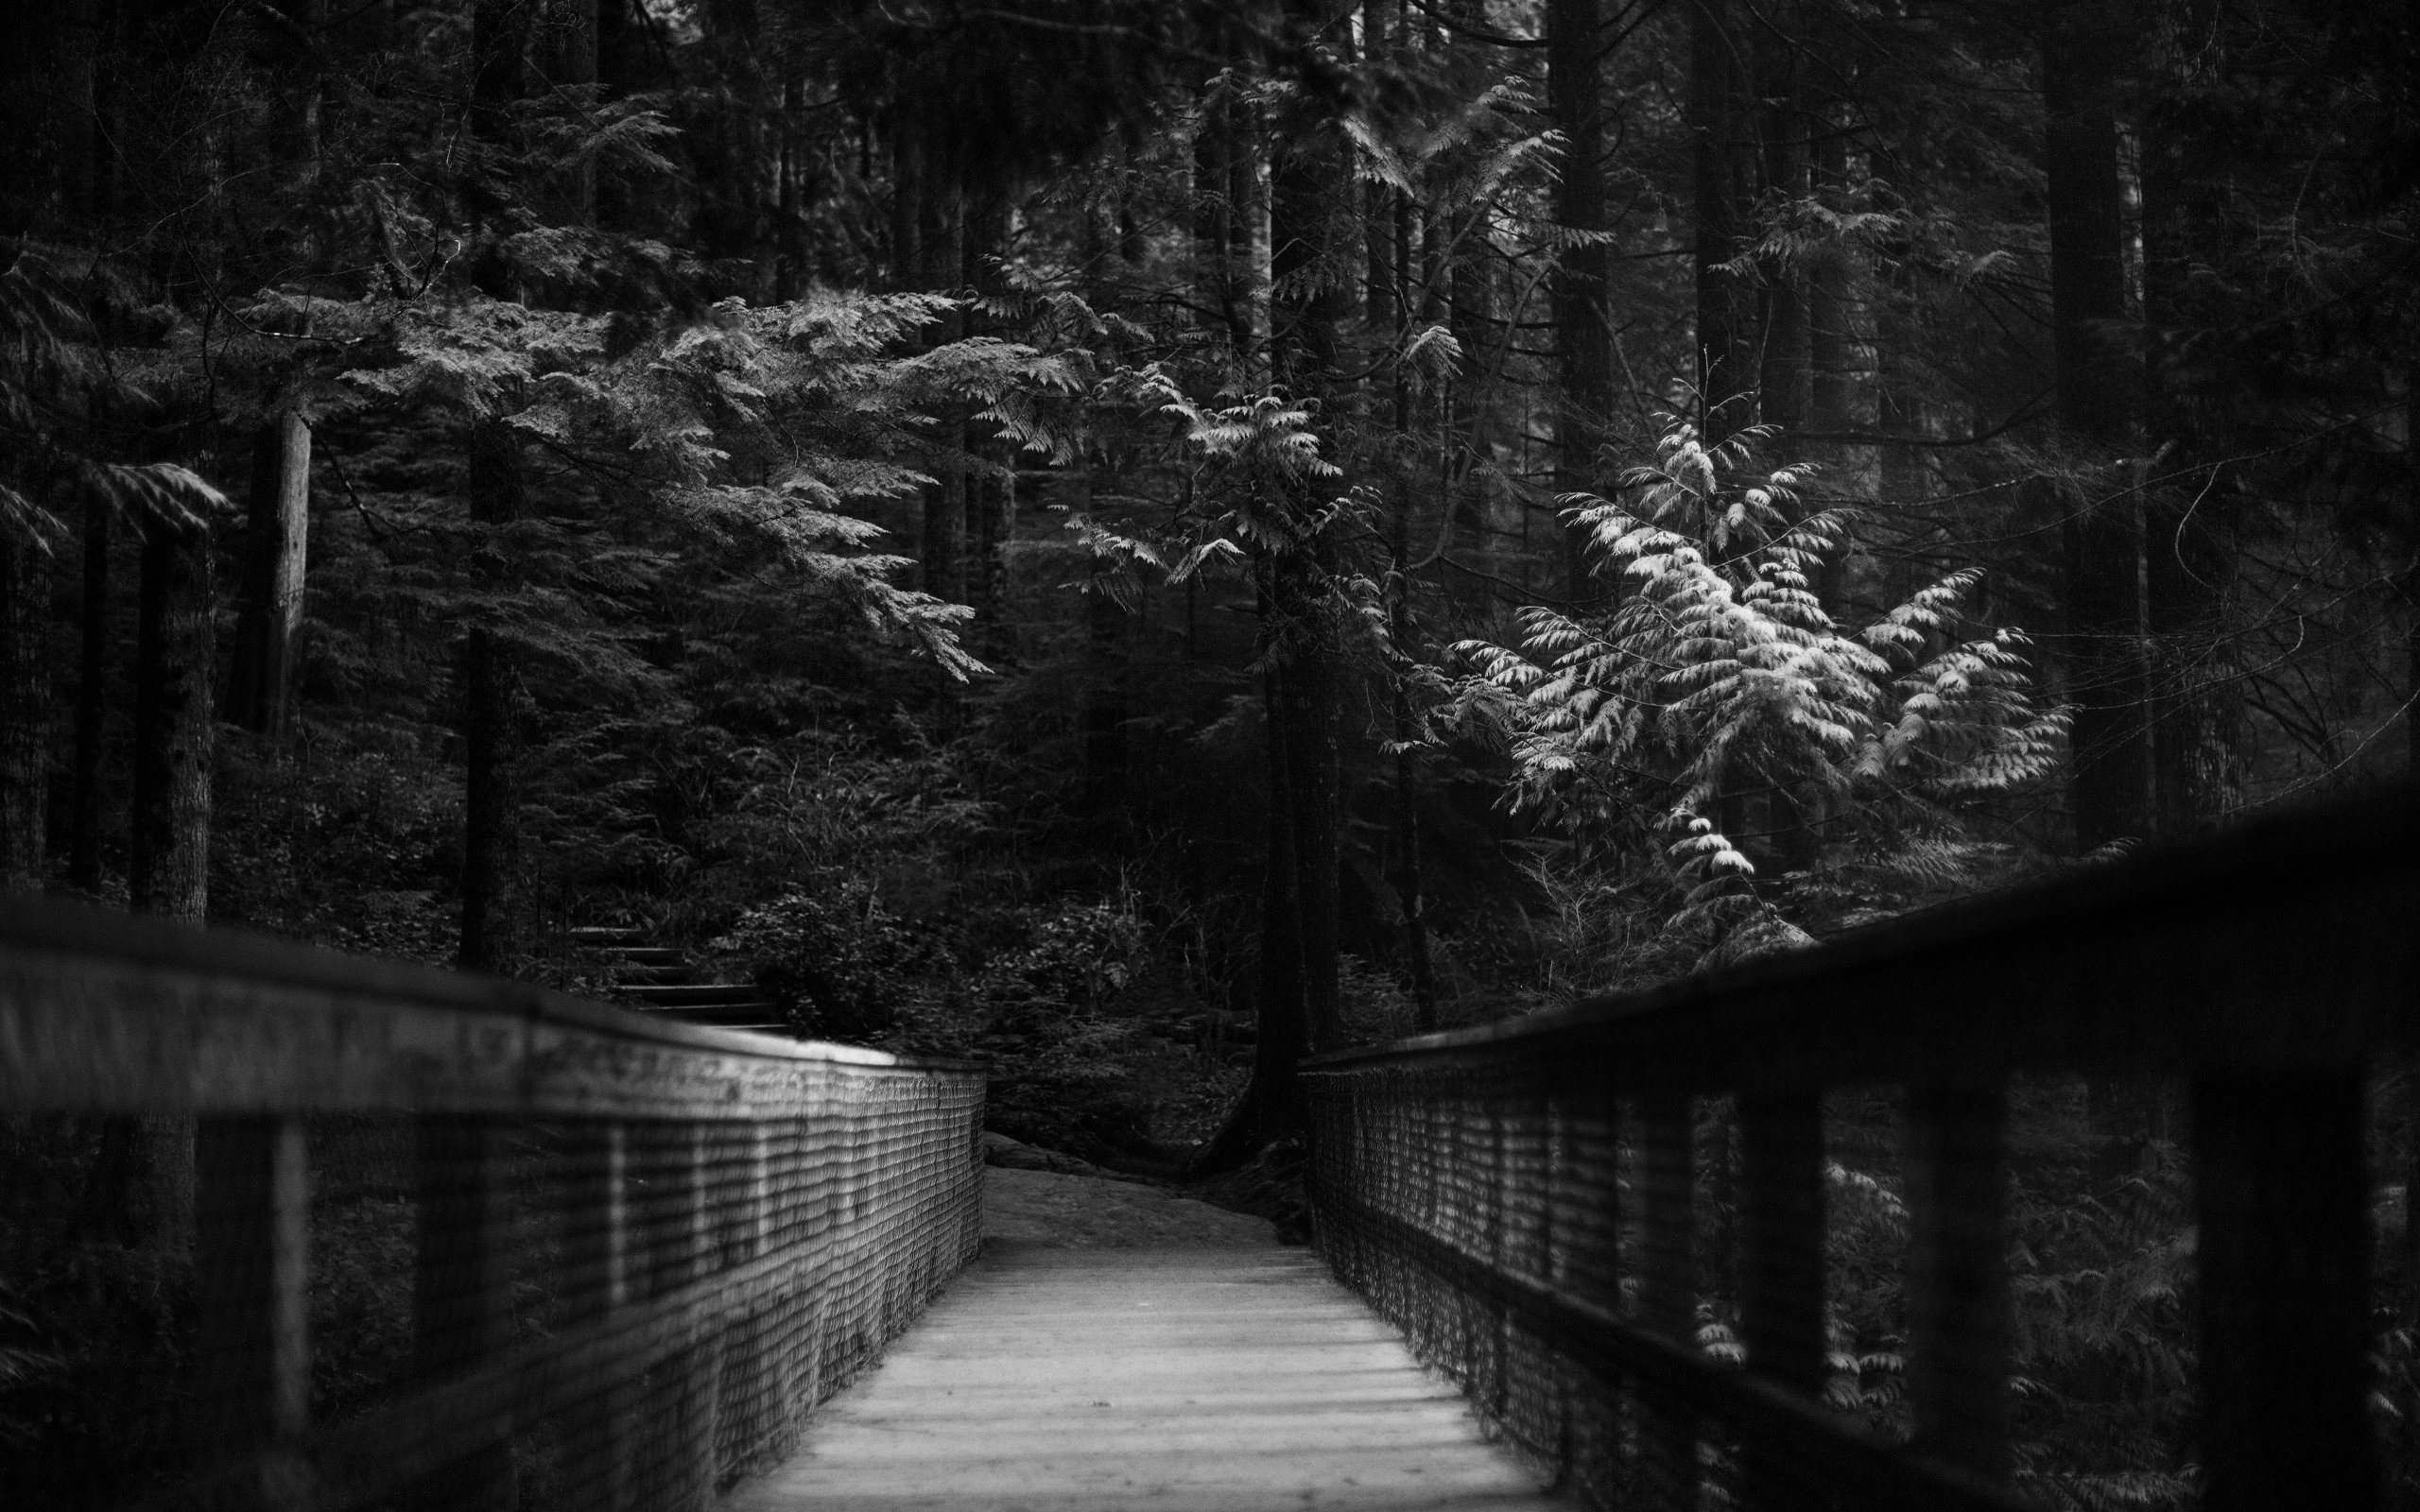 Dark Trees Hd Wallpapers: Forest, Bridge, Trees, Monochrome HD Wallpapers / Desktop